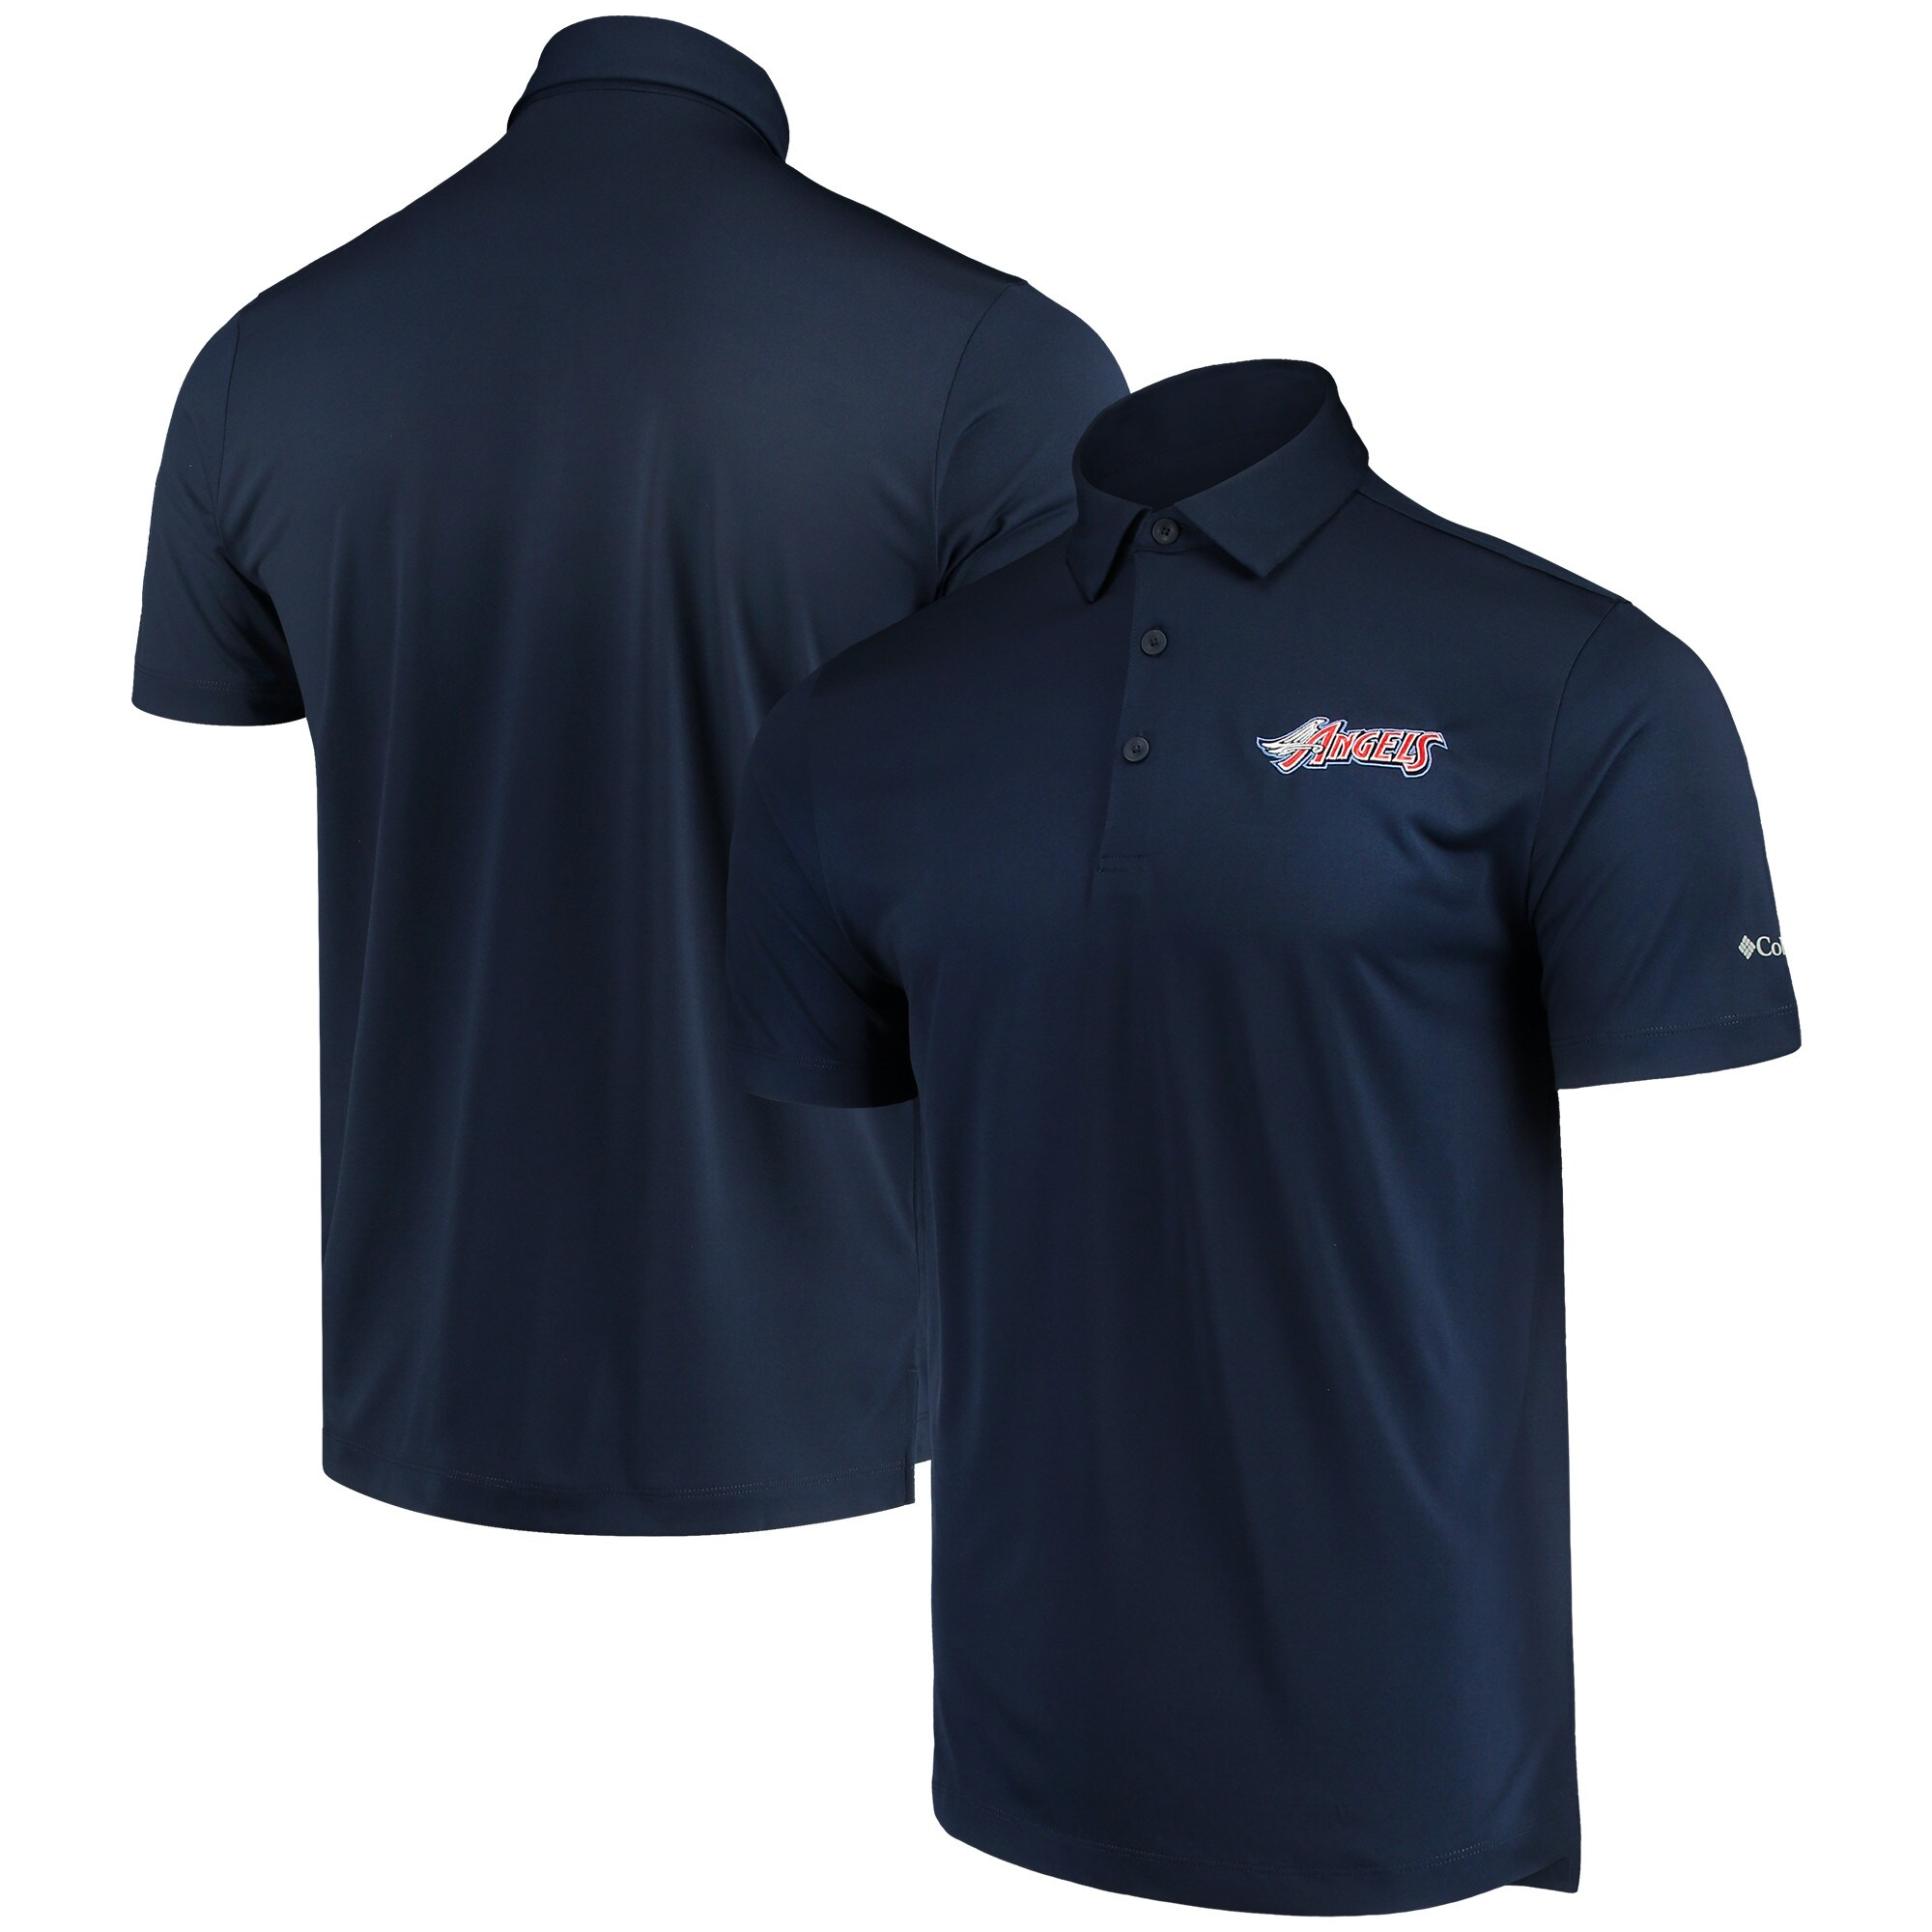 Los Angeles Angels Columbia Drive Omni-Wick Polo - Navy